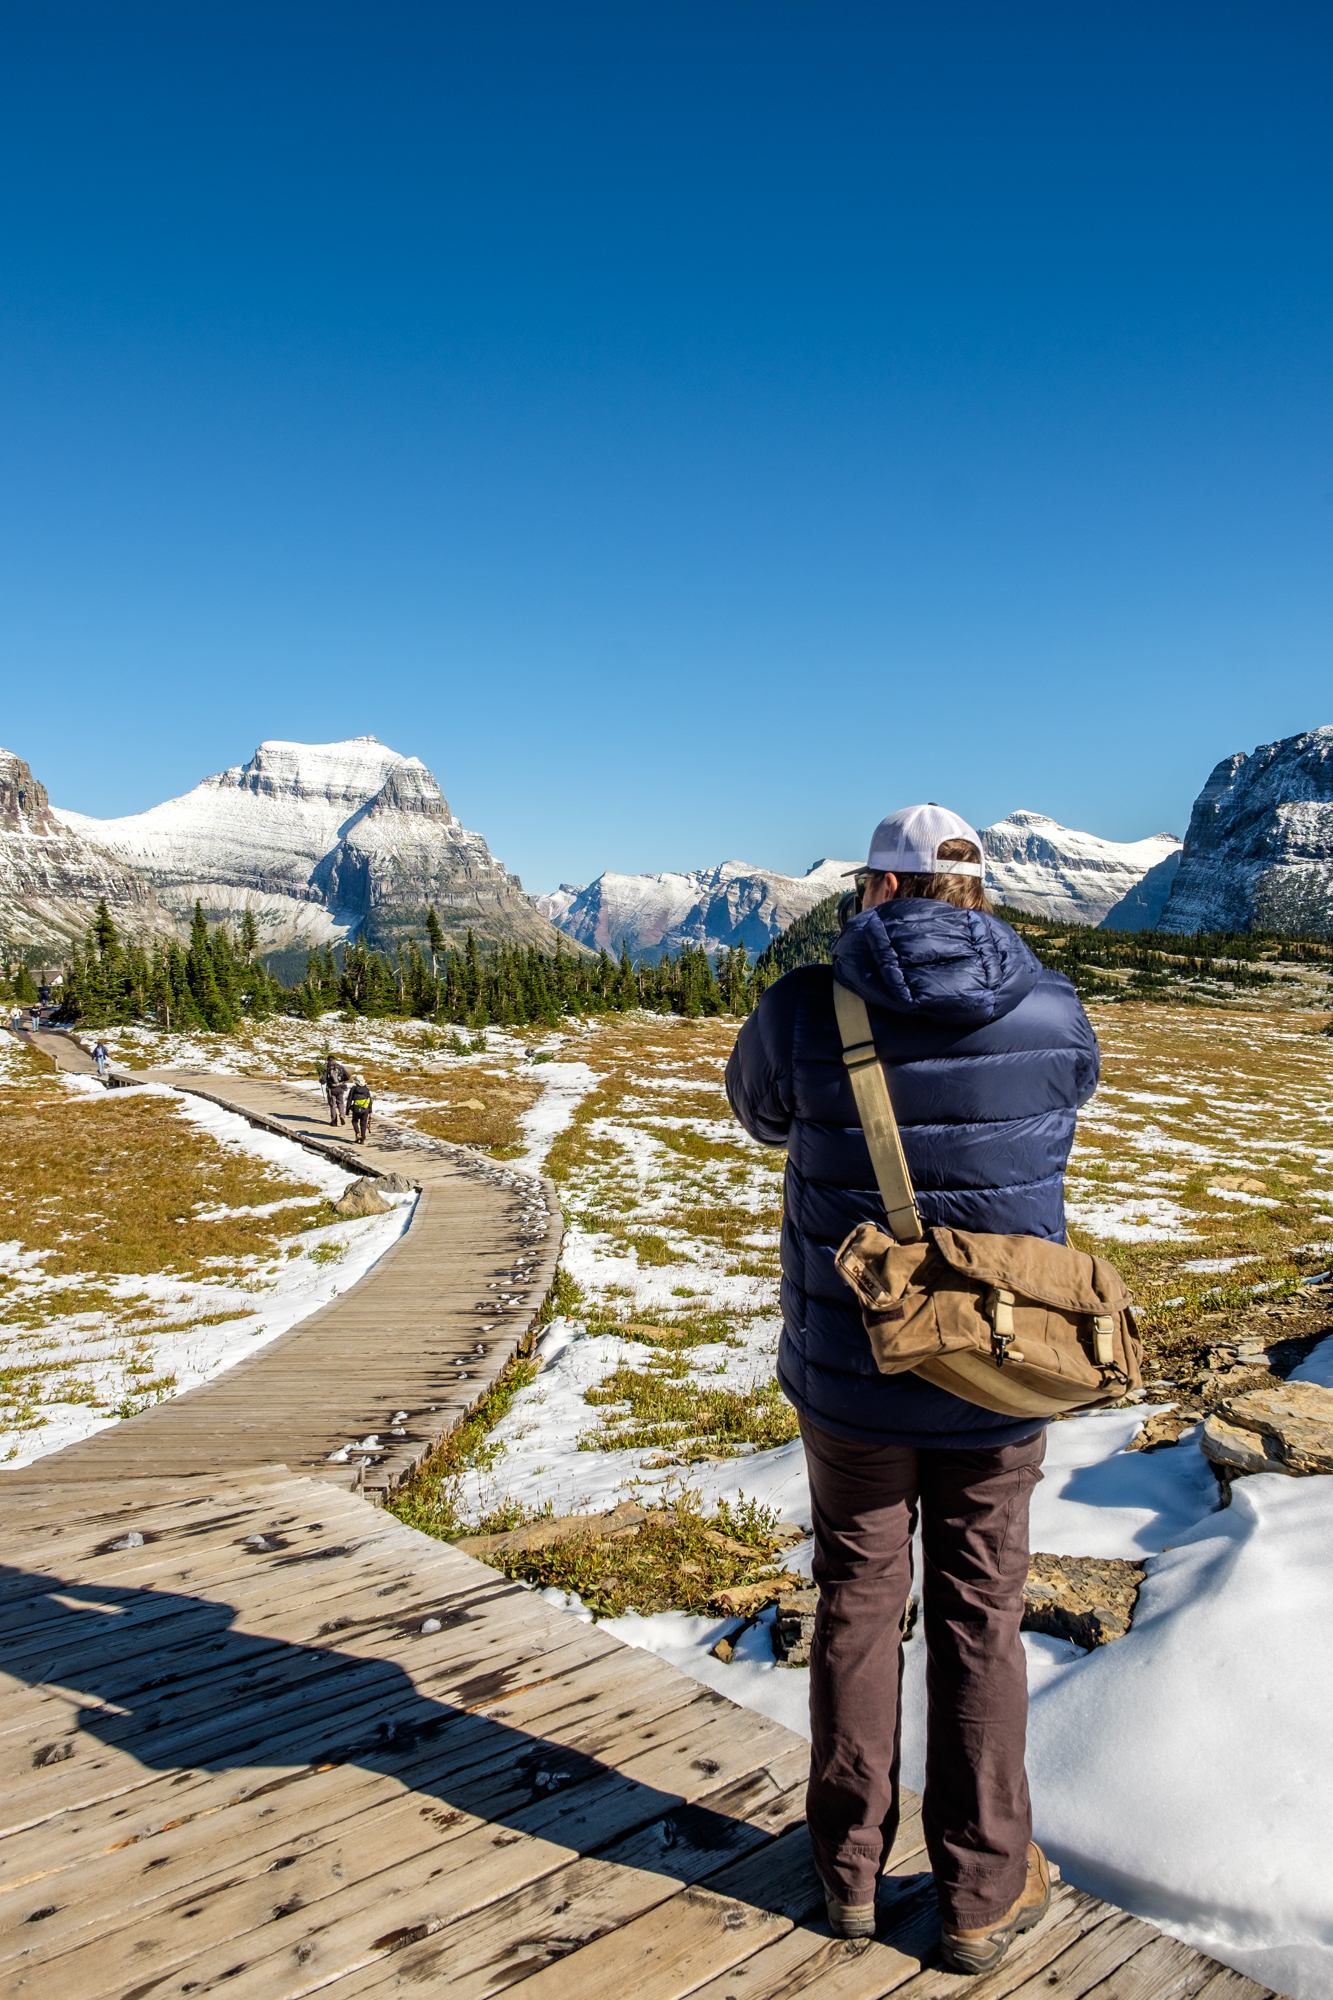 Jonathan captures the sub-alpine wilderness and the snowy autumn landscape.